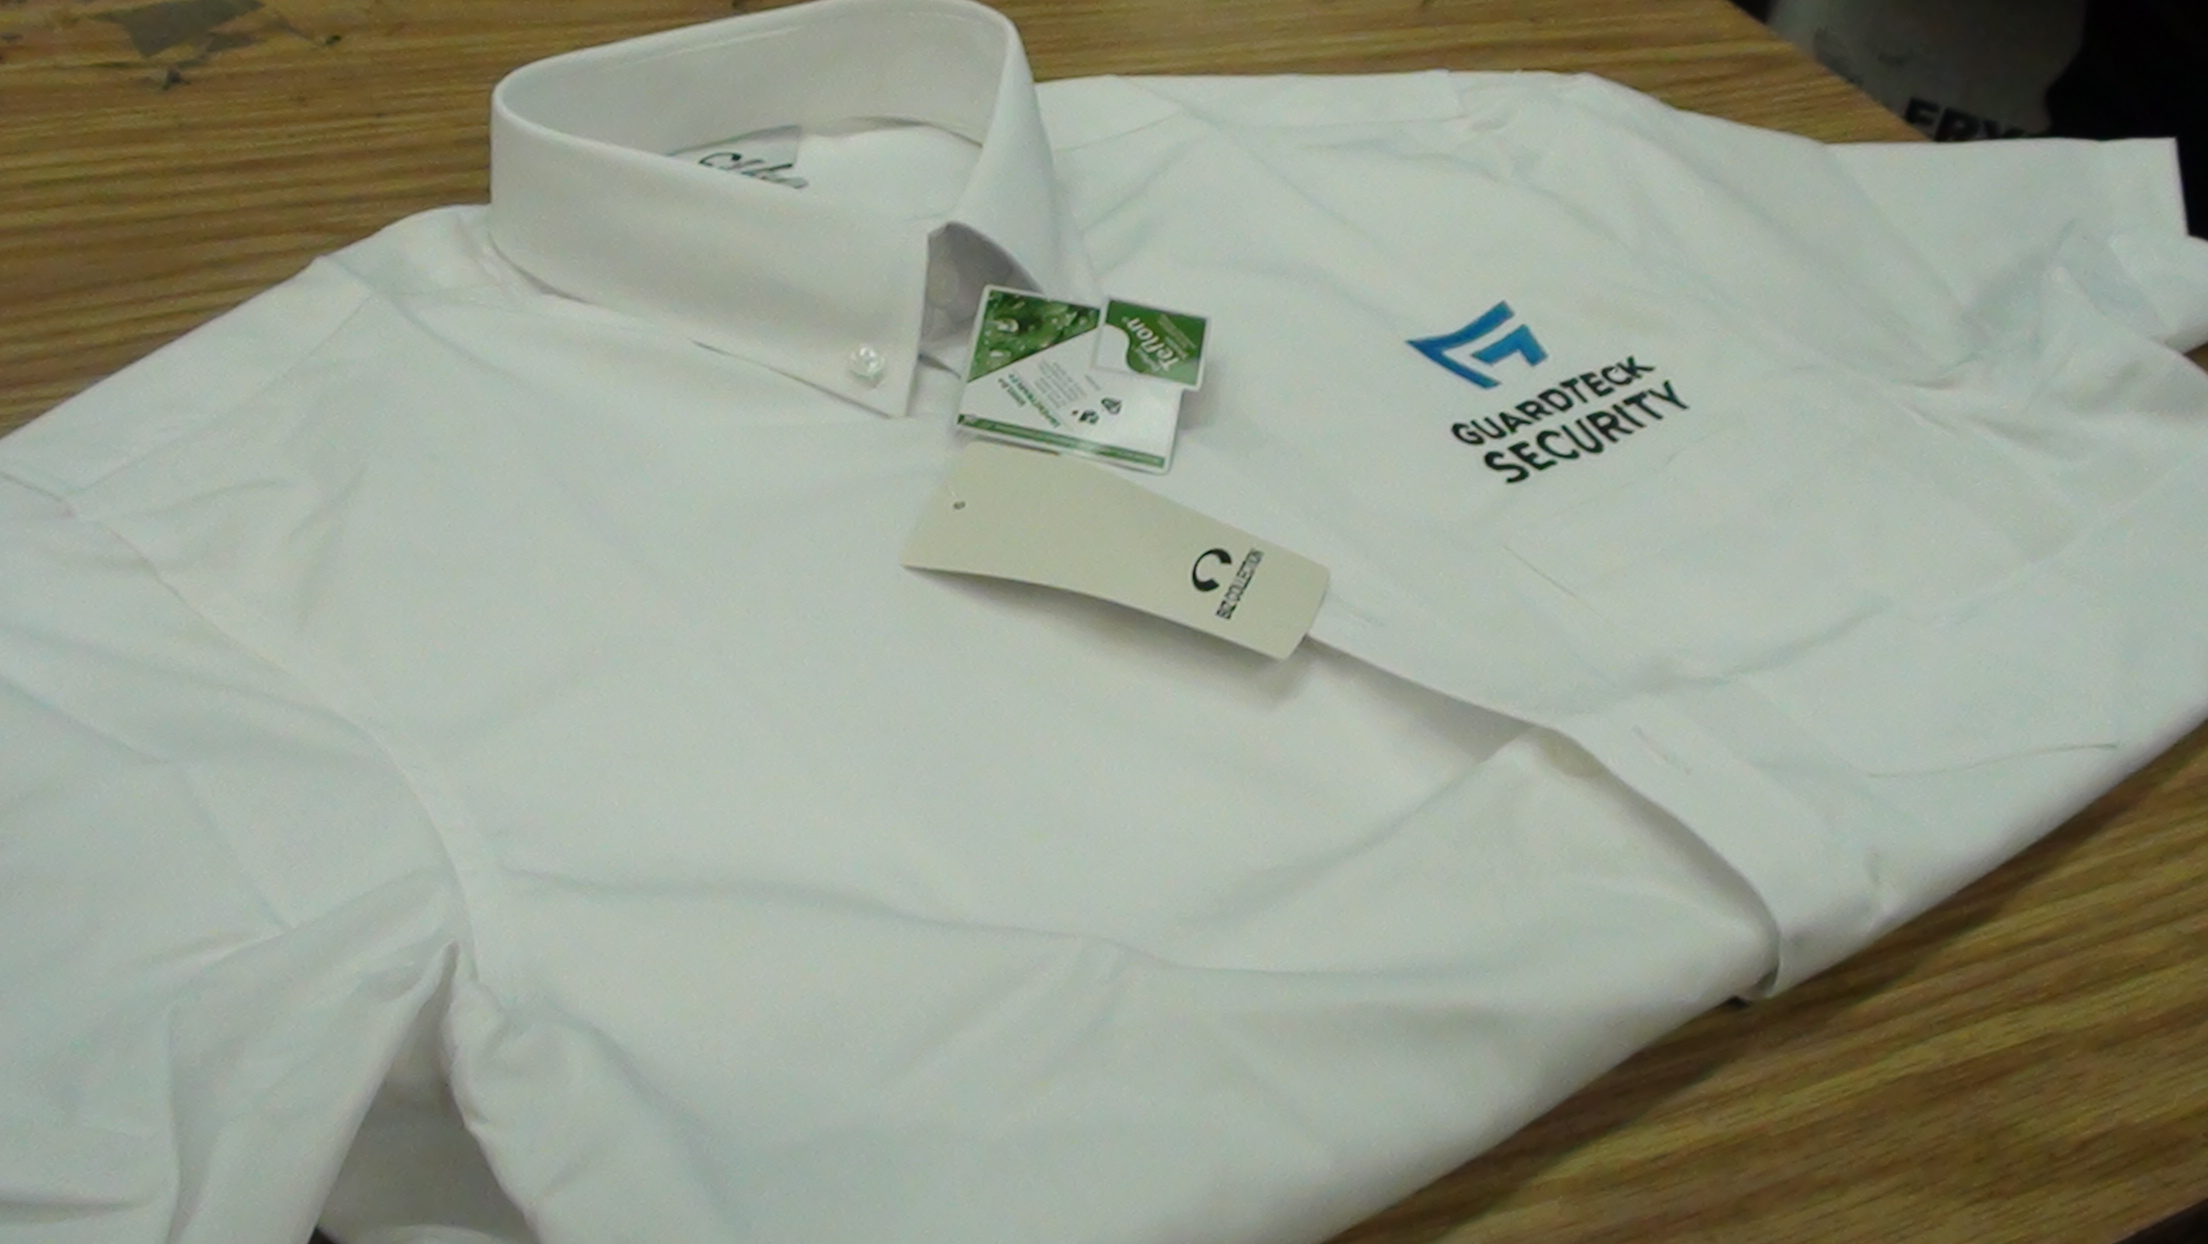 Guardteck Security embroidery shirts